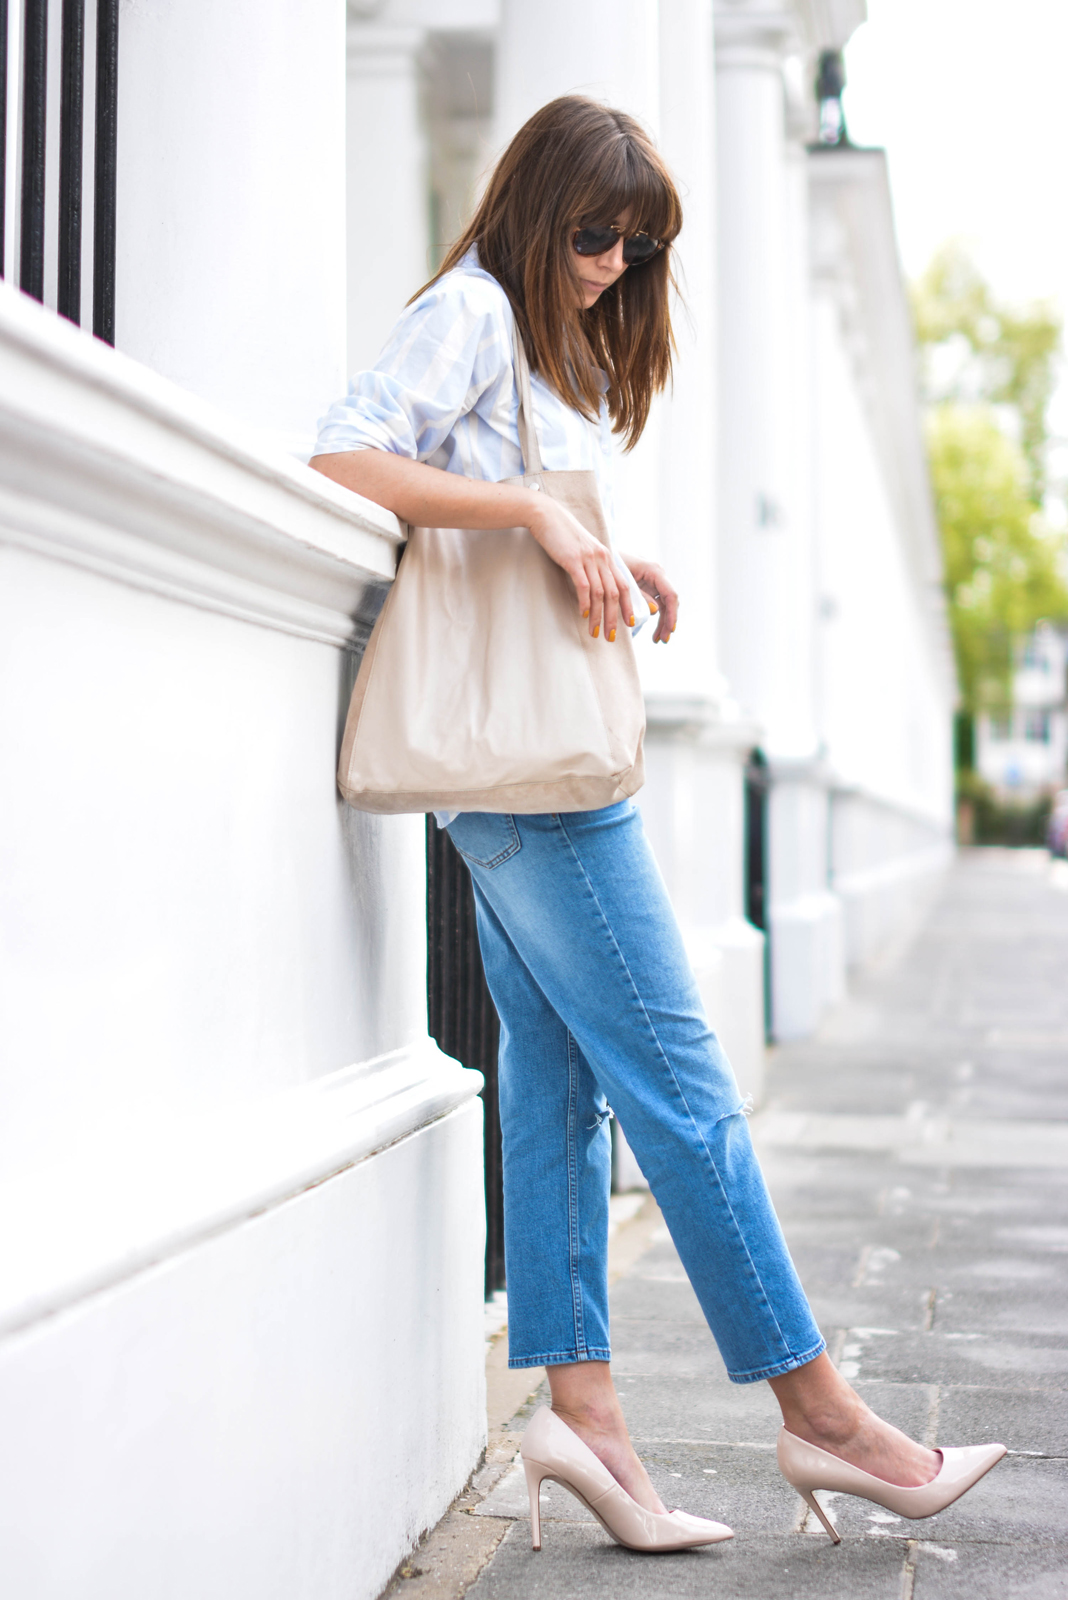 EJSTYLE - Emma Hill wears ASOS Thea girlfriend jeans with ripped knees, striped boyfriend shirt, leather suede nude shopper tote bag, nude patent pointed toe court shoes, aviator sunglasses